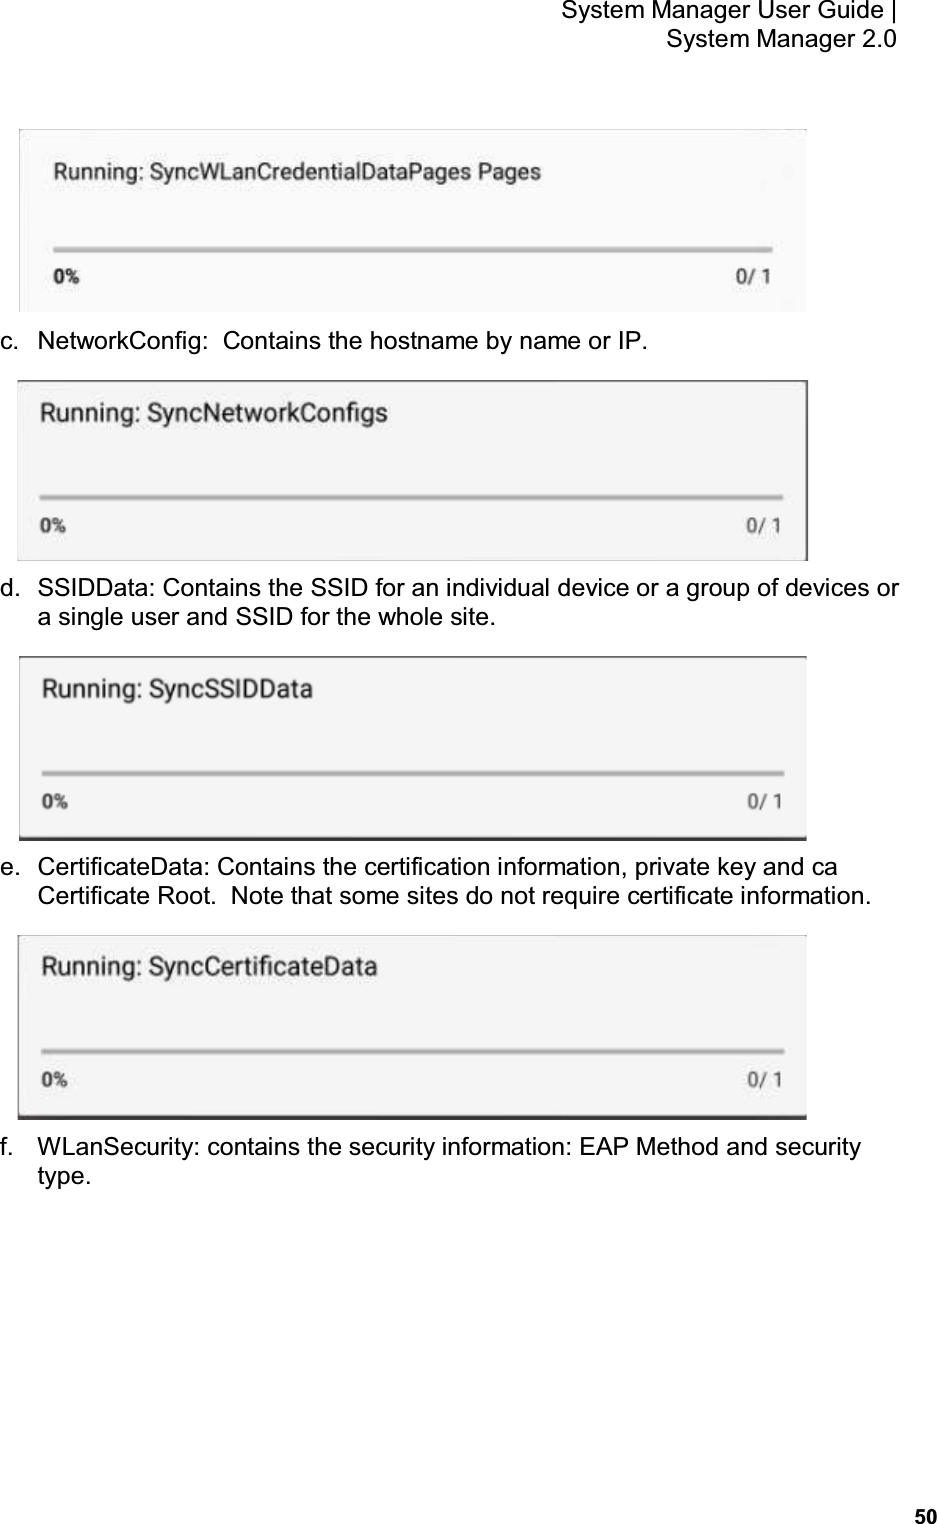 50 System Manager User Guide    System Manager 2.0  c.  NetworkConfig:  Contains the hostname by name or IP.  d.  SSIDData: Contains the SSID for an individual device or a group of devices or a single user and SSID for the whole site.  e.  CertificateData: Contains the certification information, private key and ca Certificate Root.  Note that some sites do not require certificate information.  f.  WLanSecurity: contains the security information: EAP Method and security type.